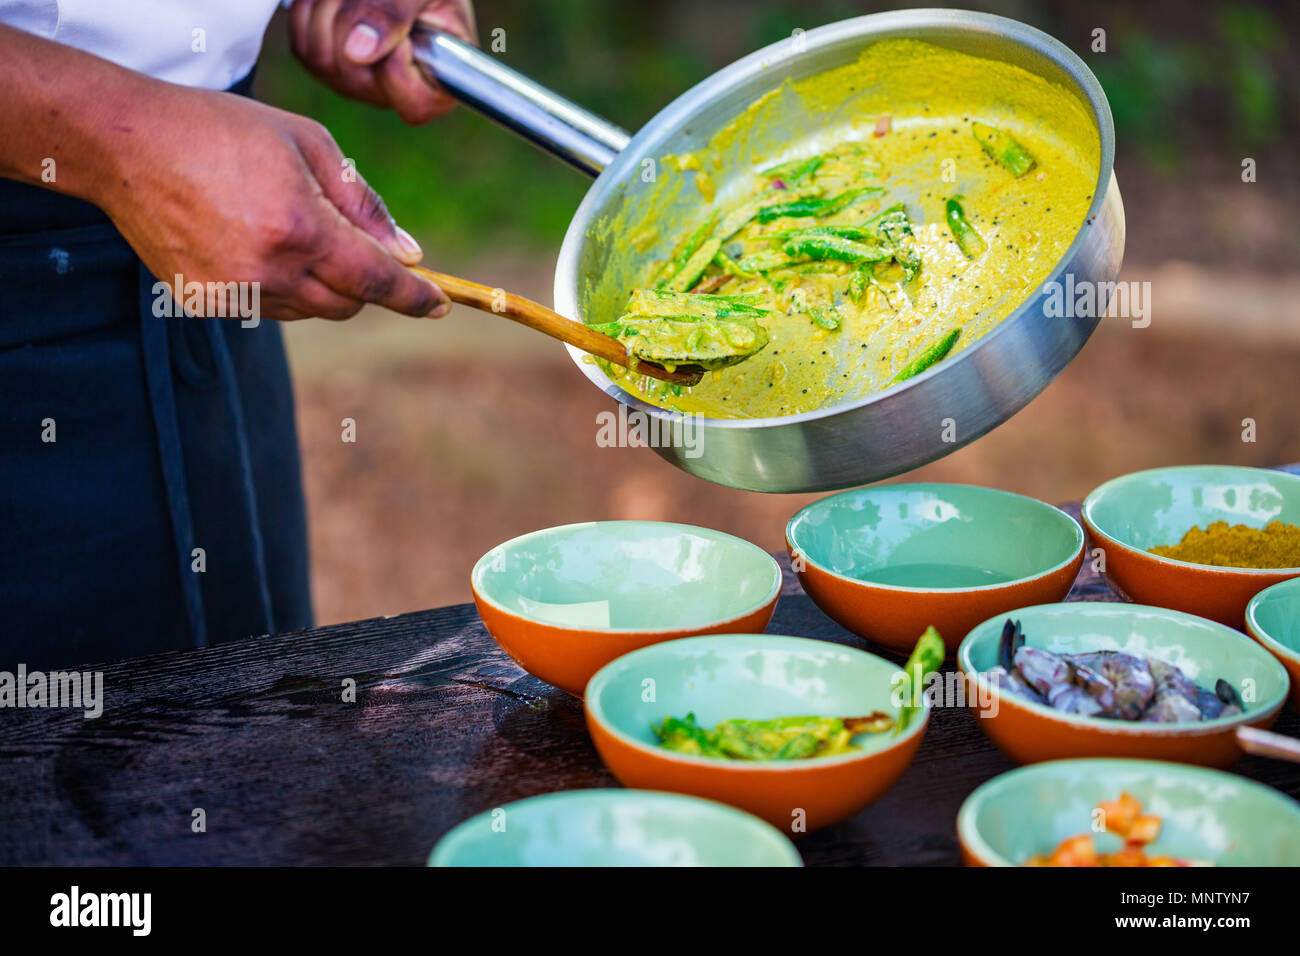 Chef making traditional Sri Lankan curry dish at cooking class - Stock Image